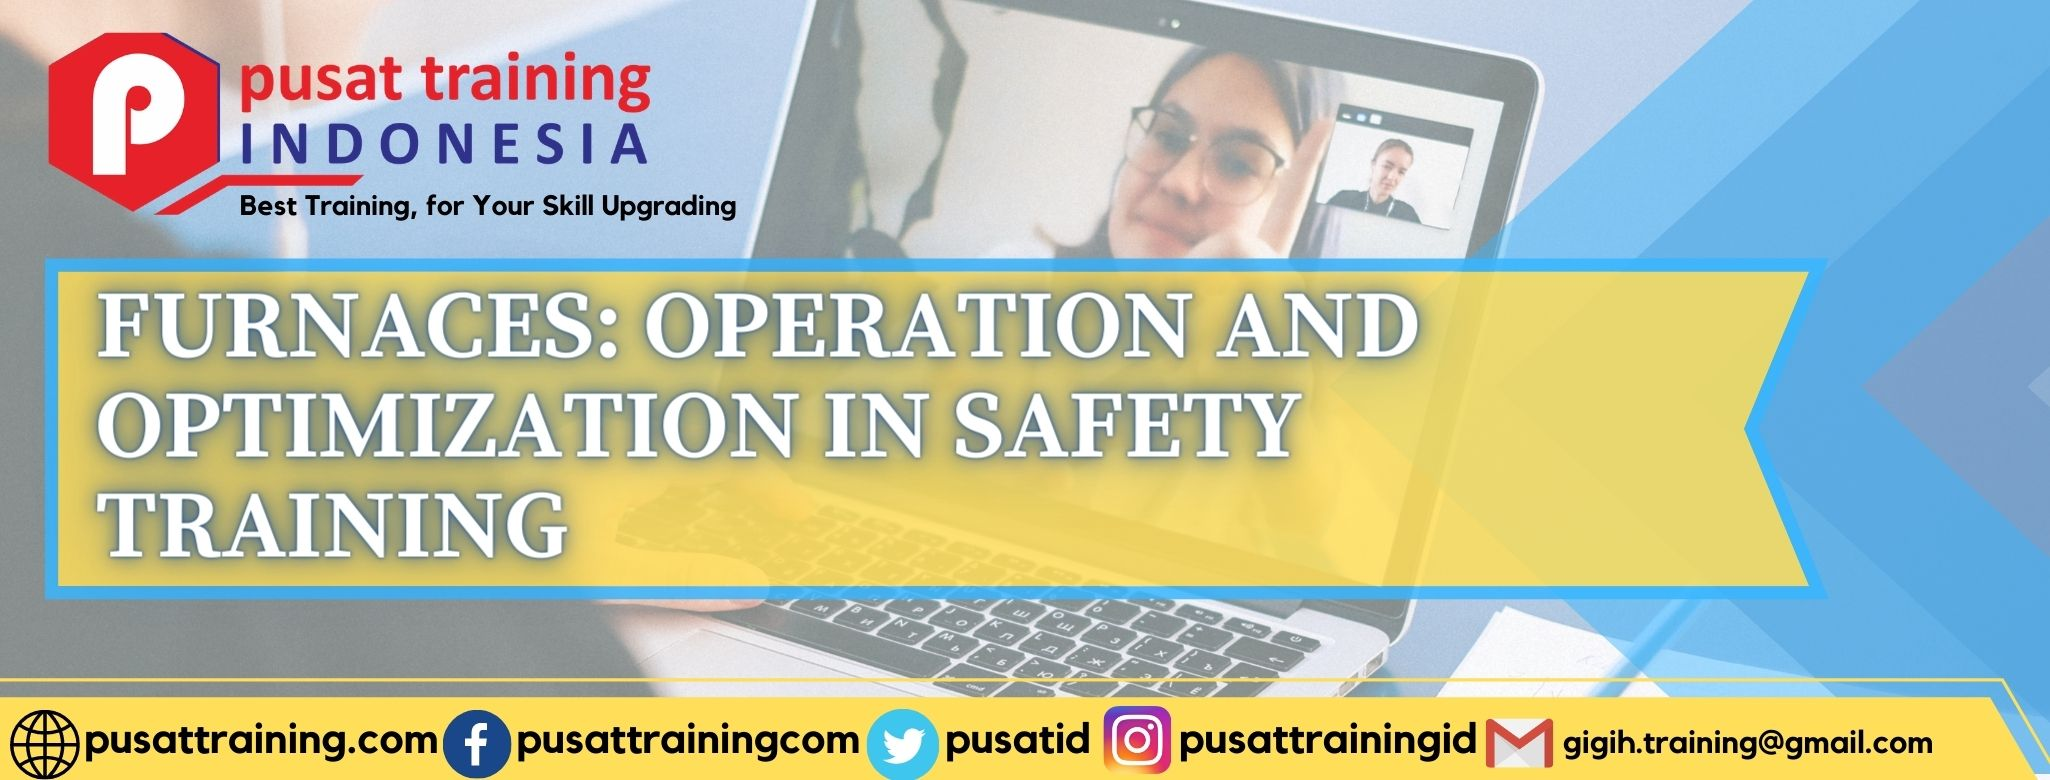 furnaces-operation-and-optimization-in-sfaety-training